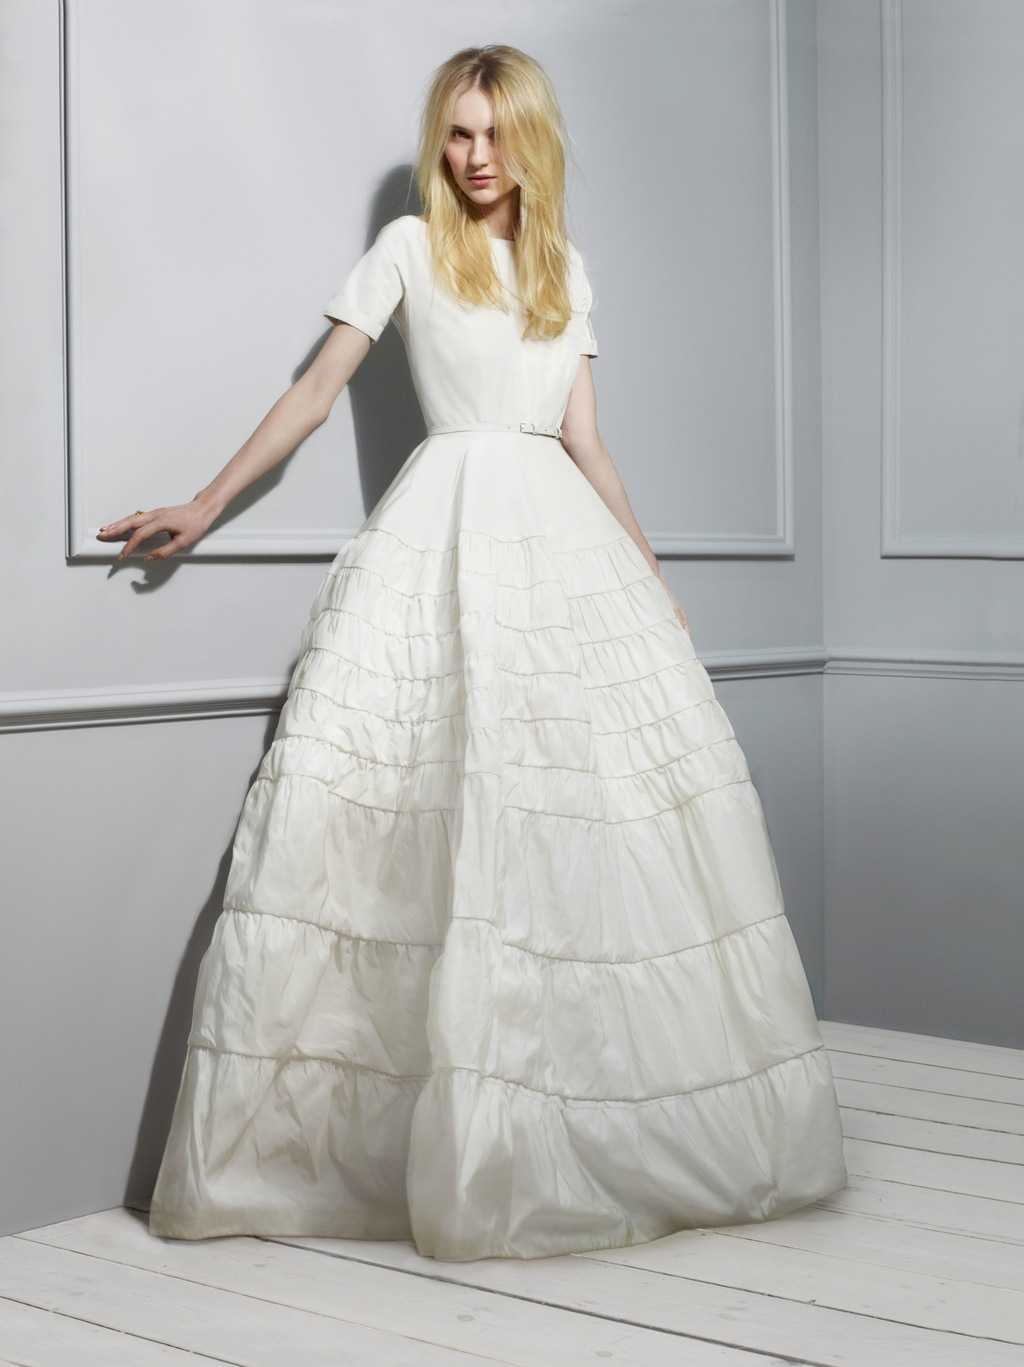 Rochas Taffeta Wedding Dress 2013 Exclusive Bridal Designer Collection from Net a Porter